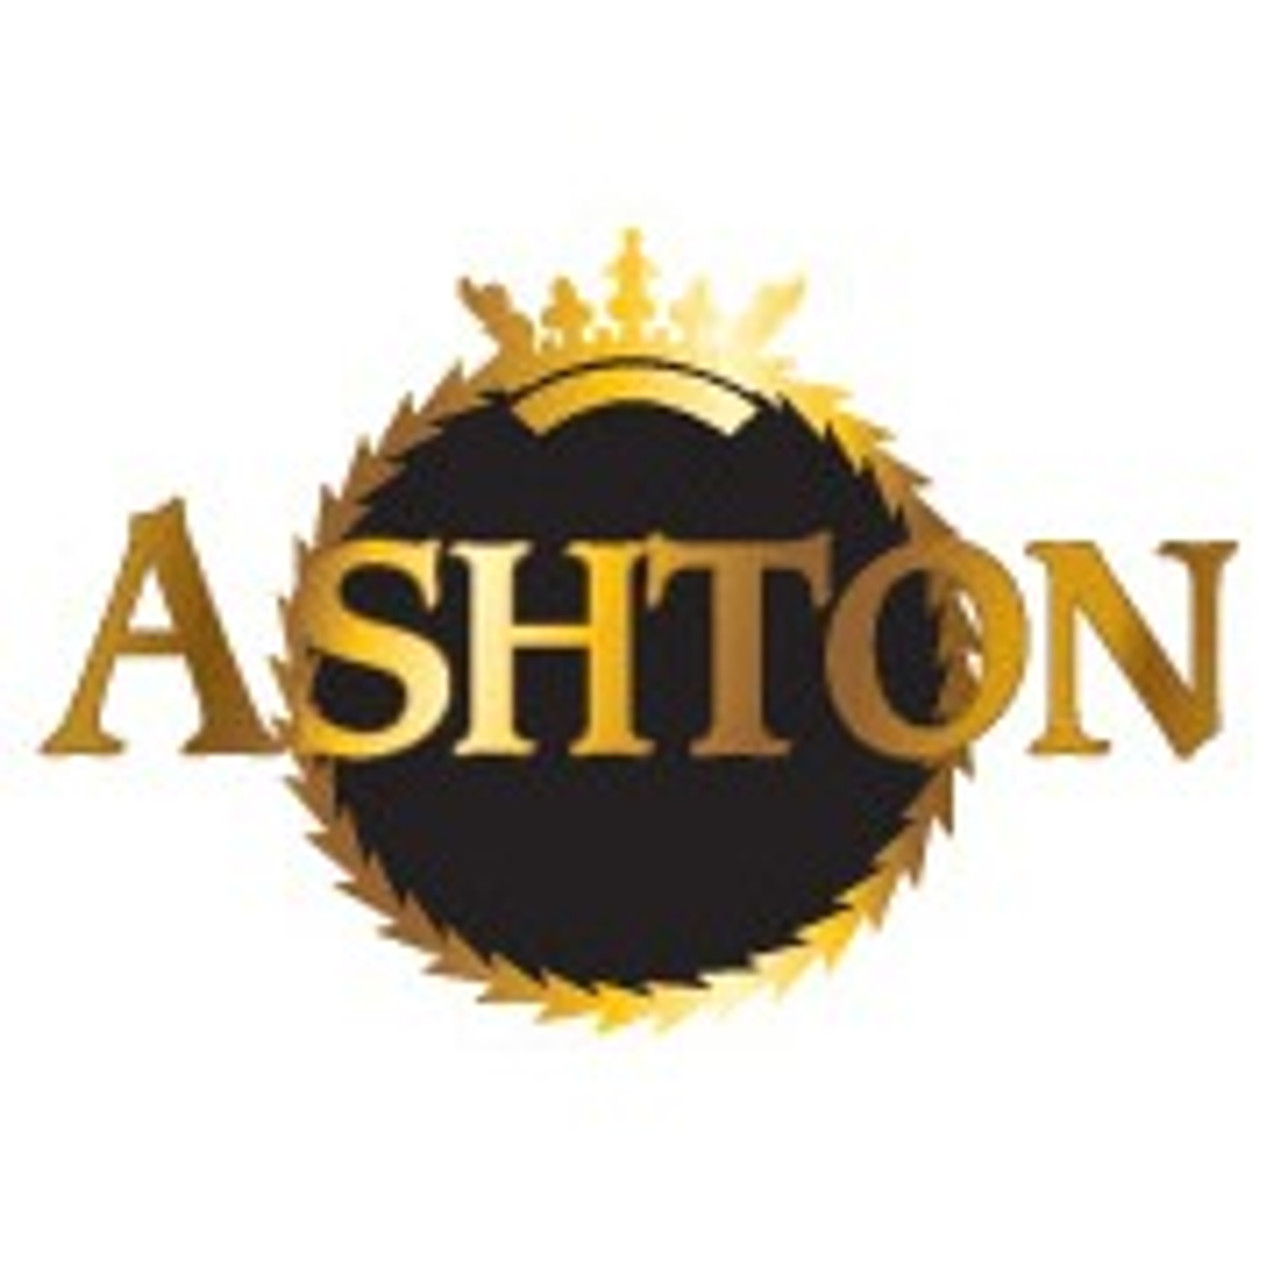 Ashton Corona Cigars - 5 x 44 (Cedar Chest of 25)